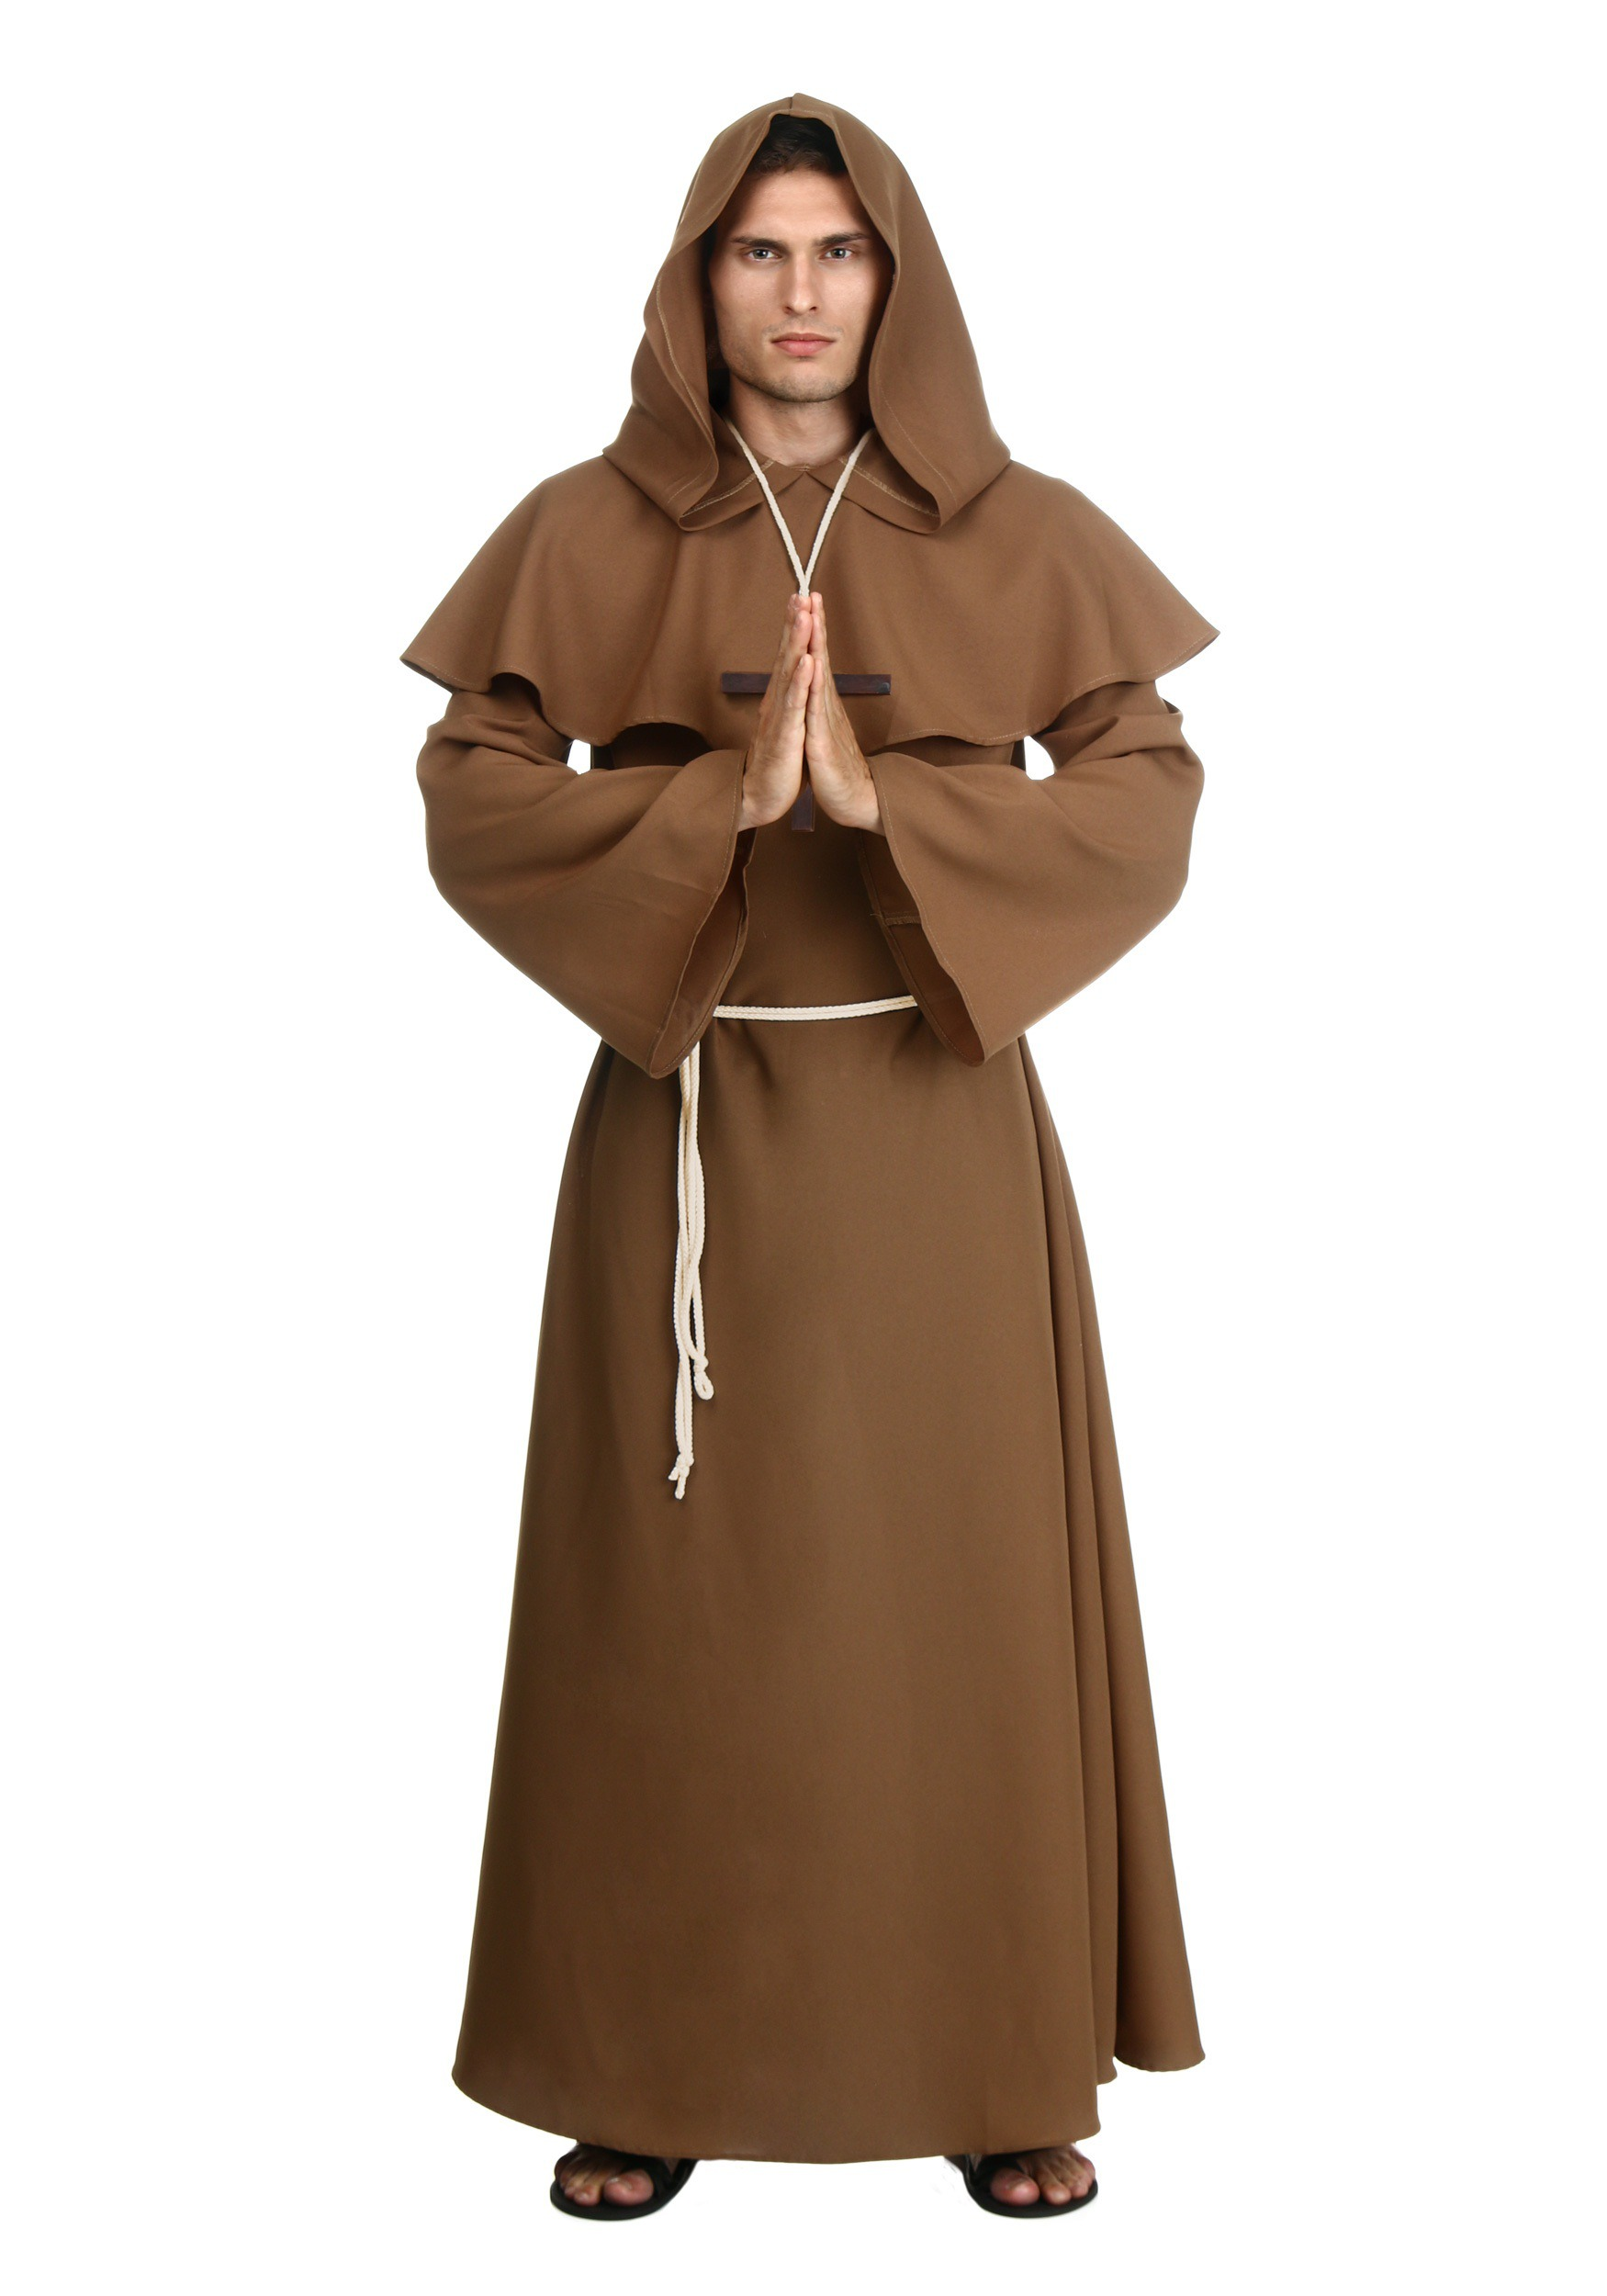 Adult Brown Monk Robe